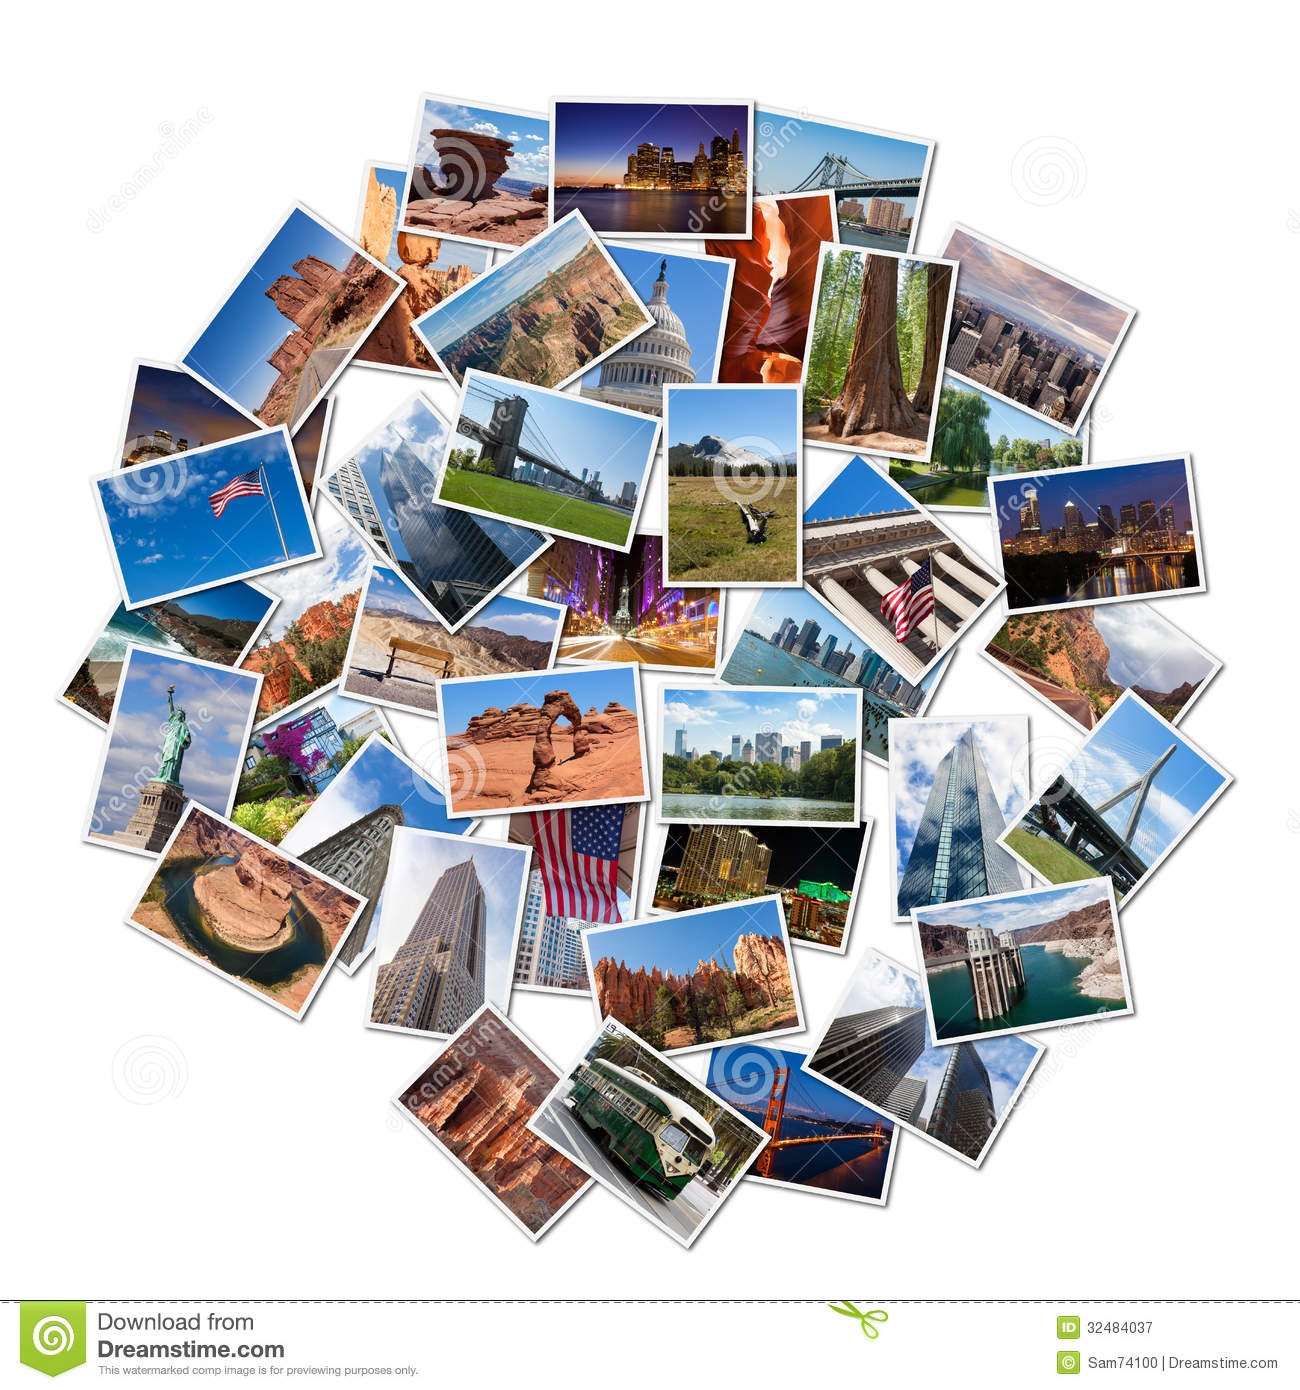 usa famous landmarks landscapes photo collage over white background 32484037